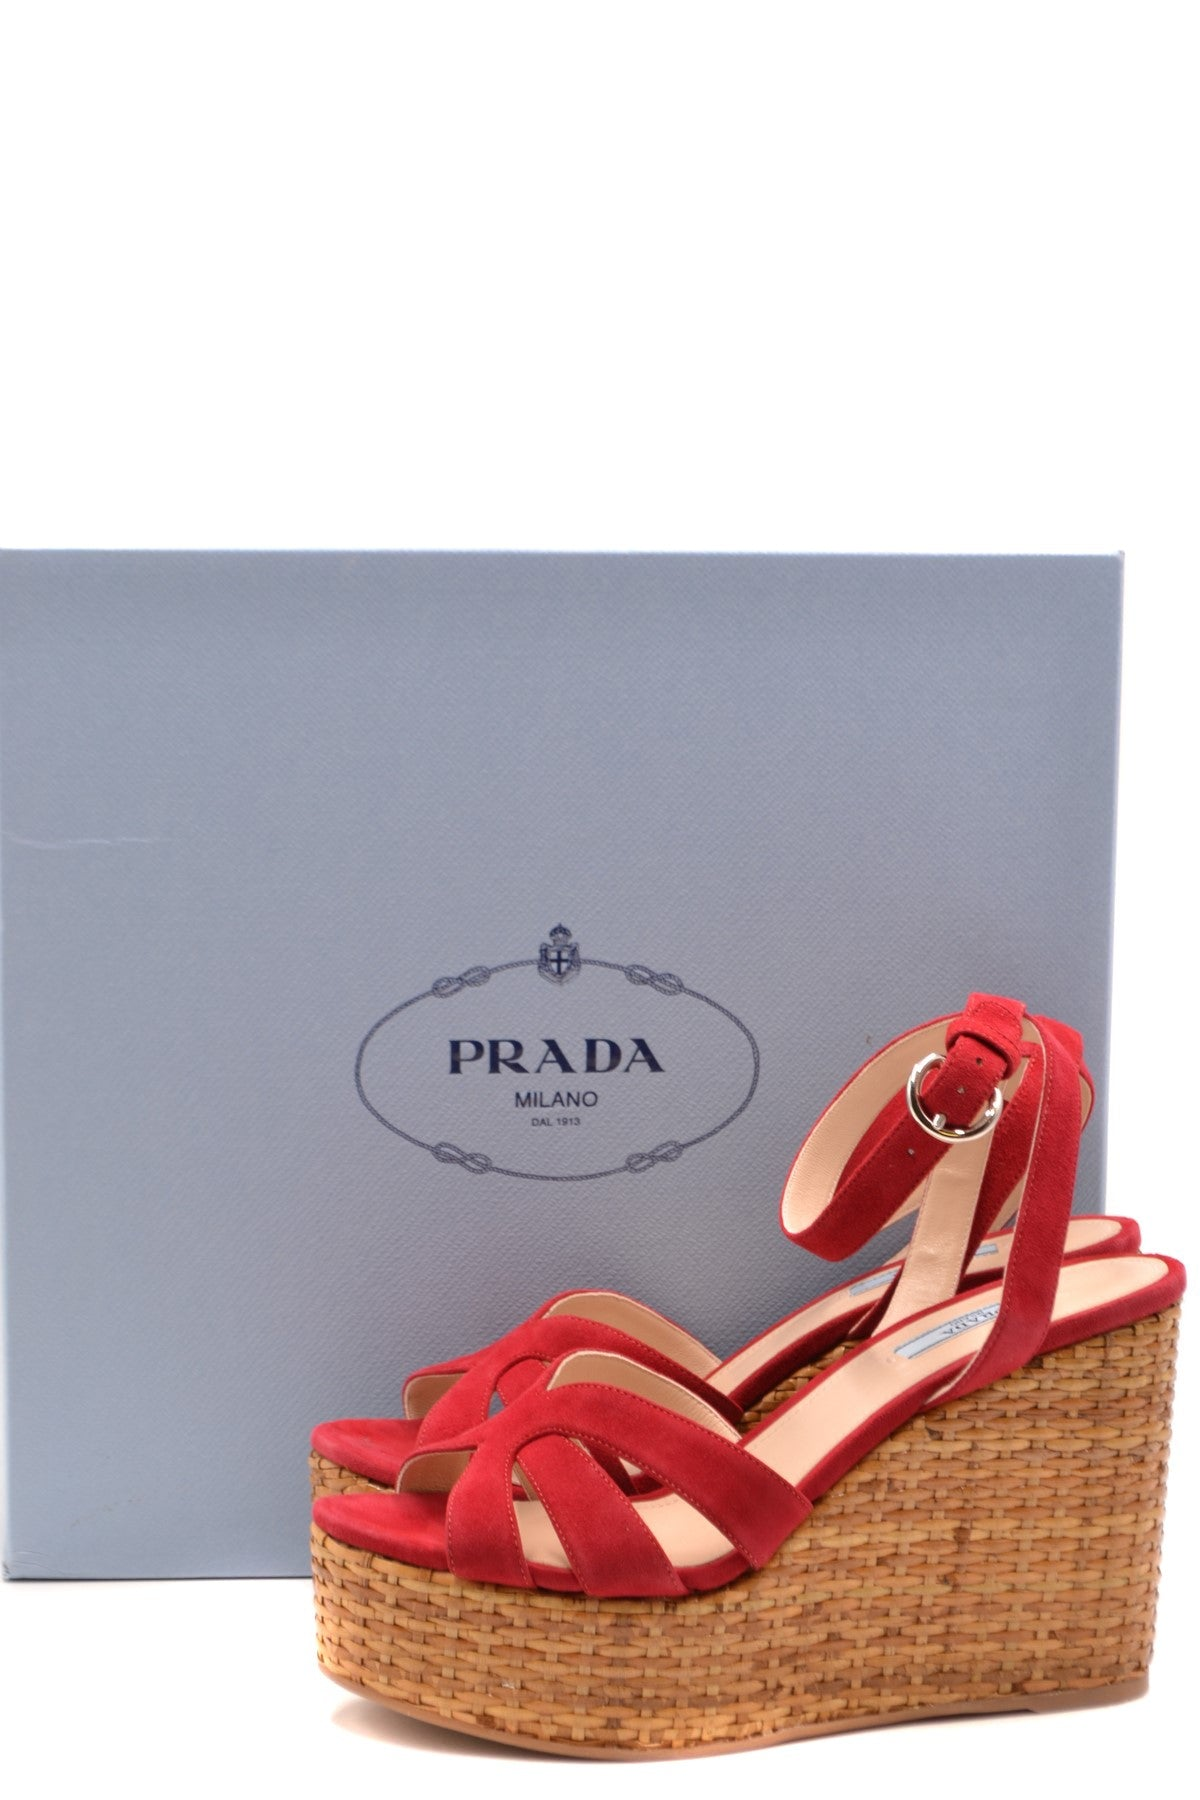 Shoes Prada-Women's Fashion - Women's Shoes - Women's Sandals-Product Details Terms: New With LabelMain Color: RedType Of Accessory: ShoesSeason: Spring / SummerMade In: ItalyGender: WomanSize: EuComposition: Chamois 100%Year: 2020Manufacturer Part Number: 1Xz705008 F0E06-Keyomi-Sook